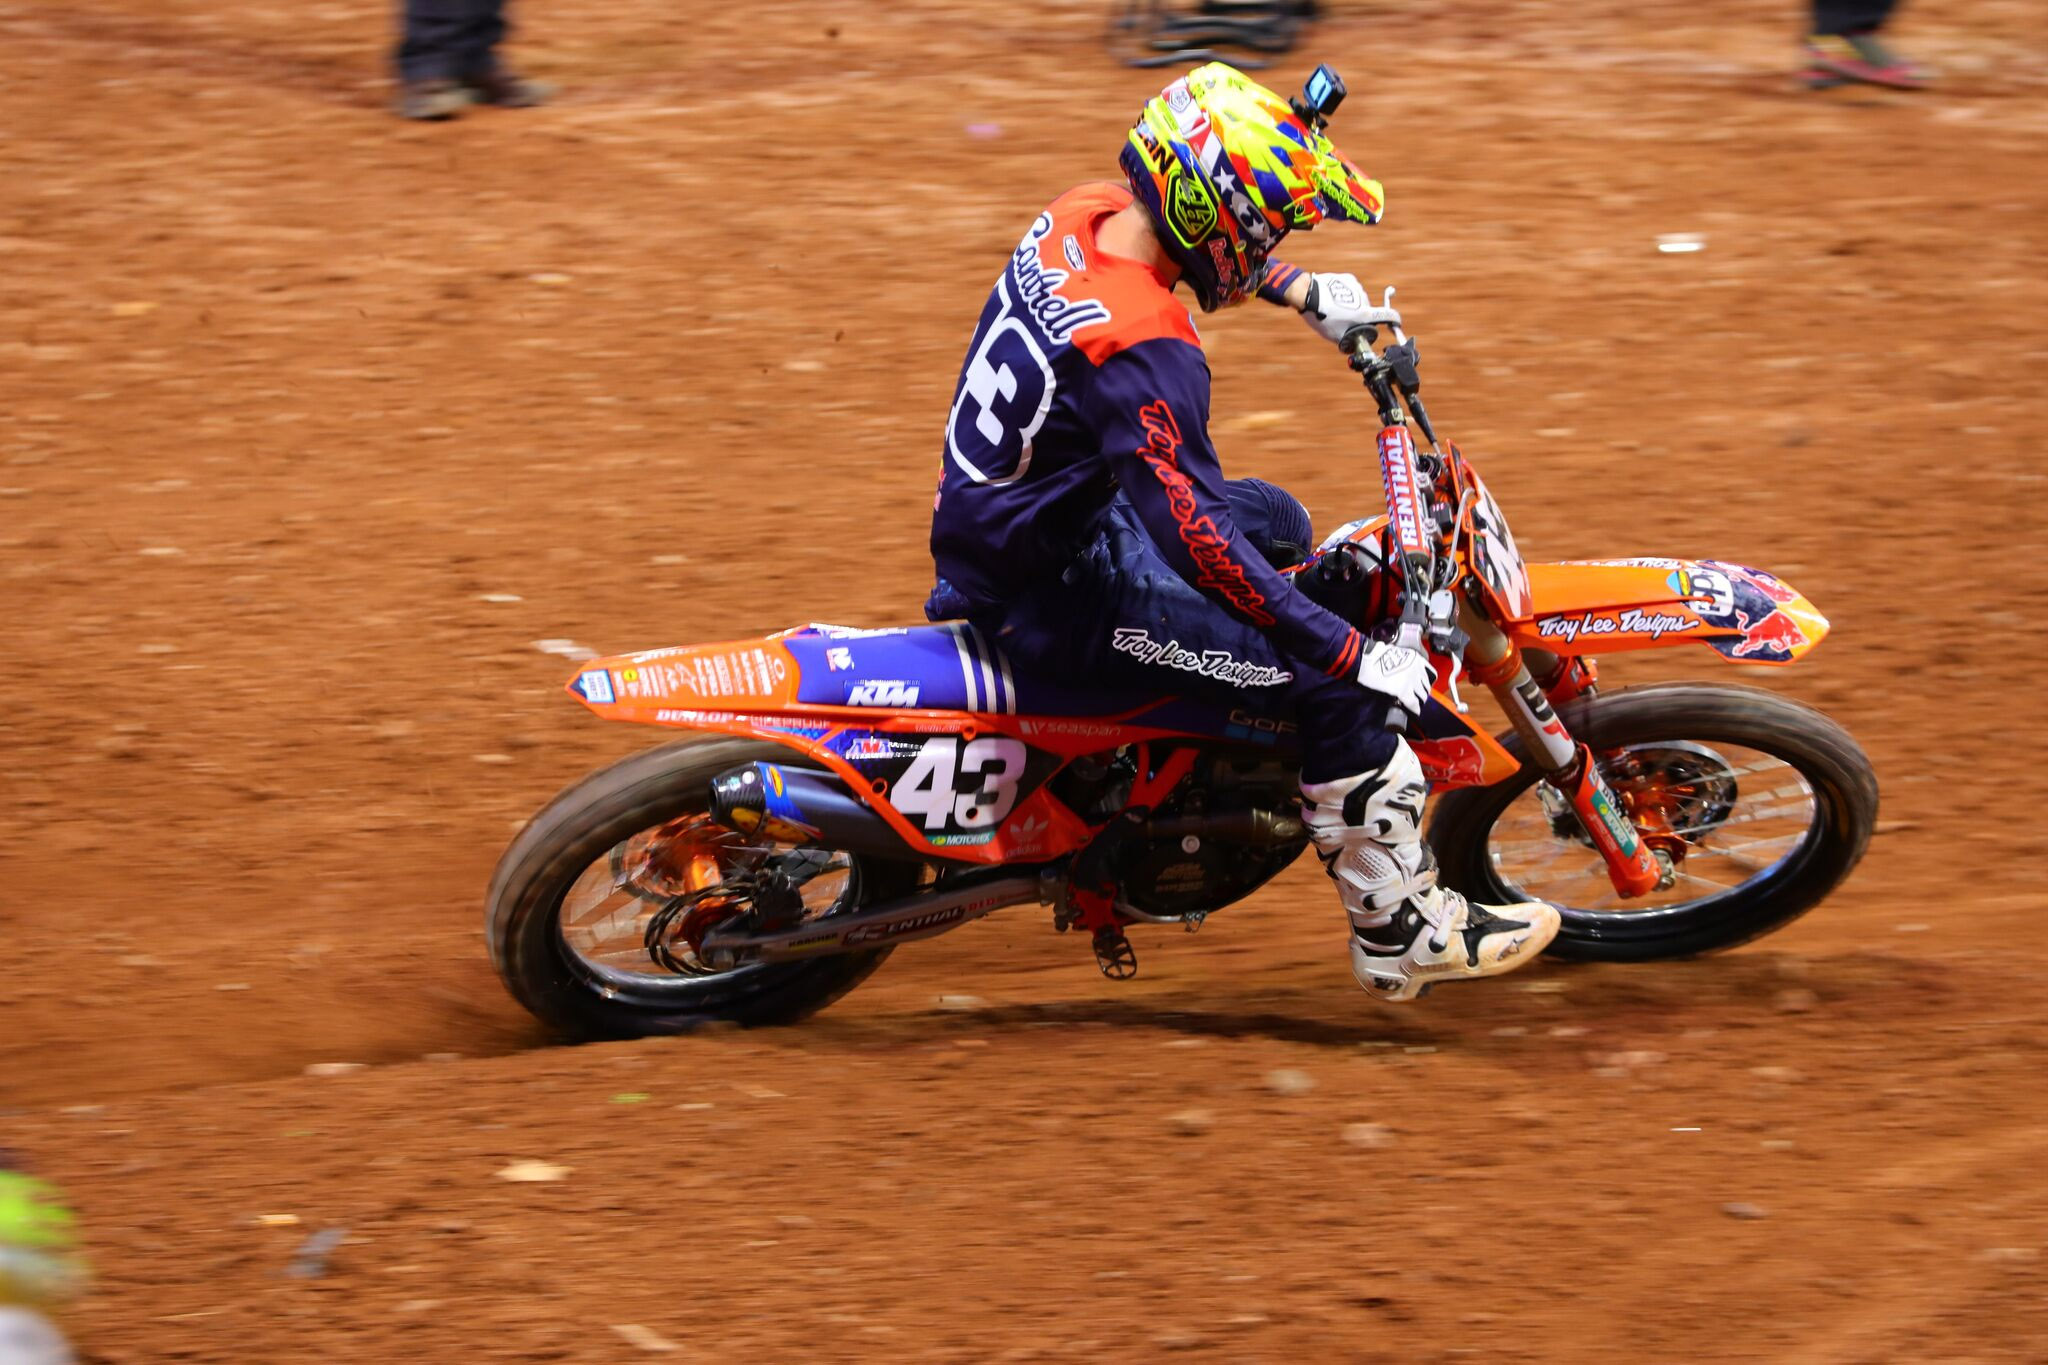 Troy Lee Designs-Red Bull-KTM's Cantrell had been able to showcase his speed but on Saturday night luck was not on his side